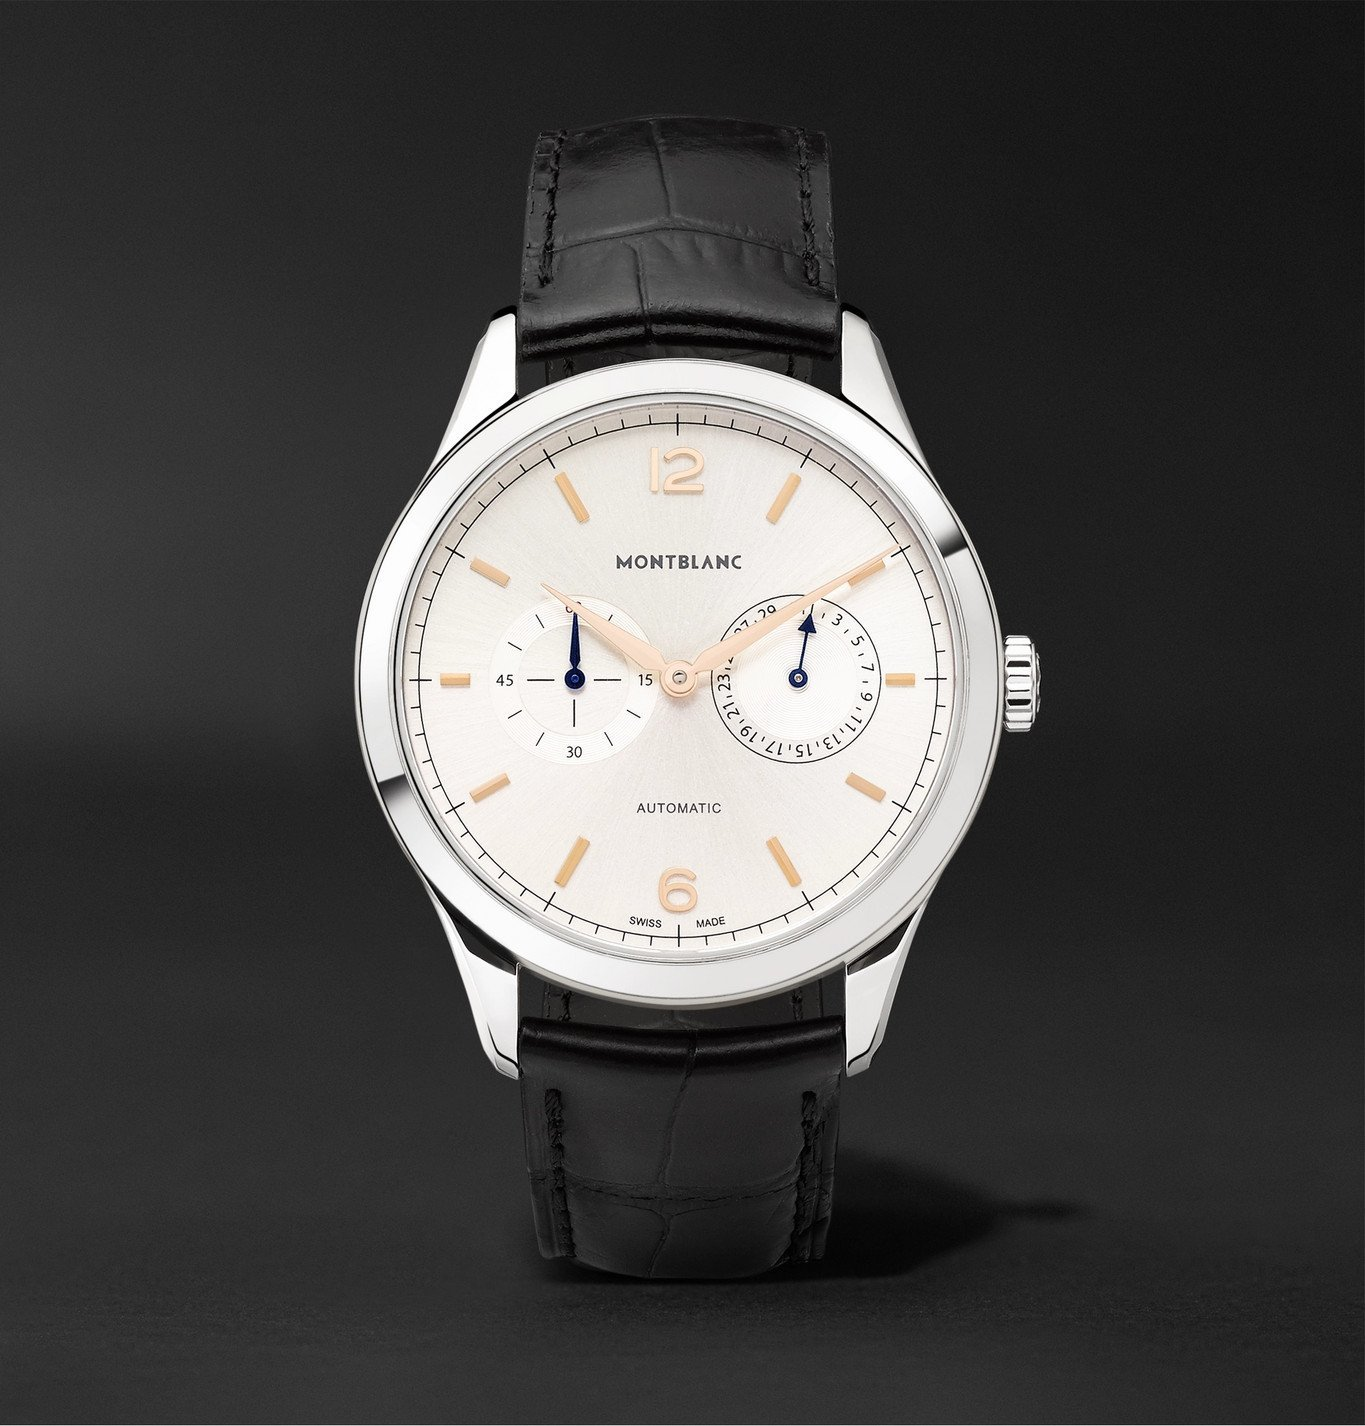 Montblanc - Heritage Chronométrie Twincounter Date Automatic 40mm Stainless Steel and Alligator Watch, Ref. No. 114872 - White